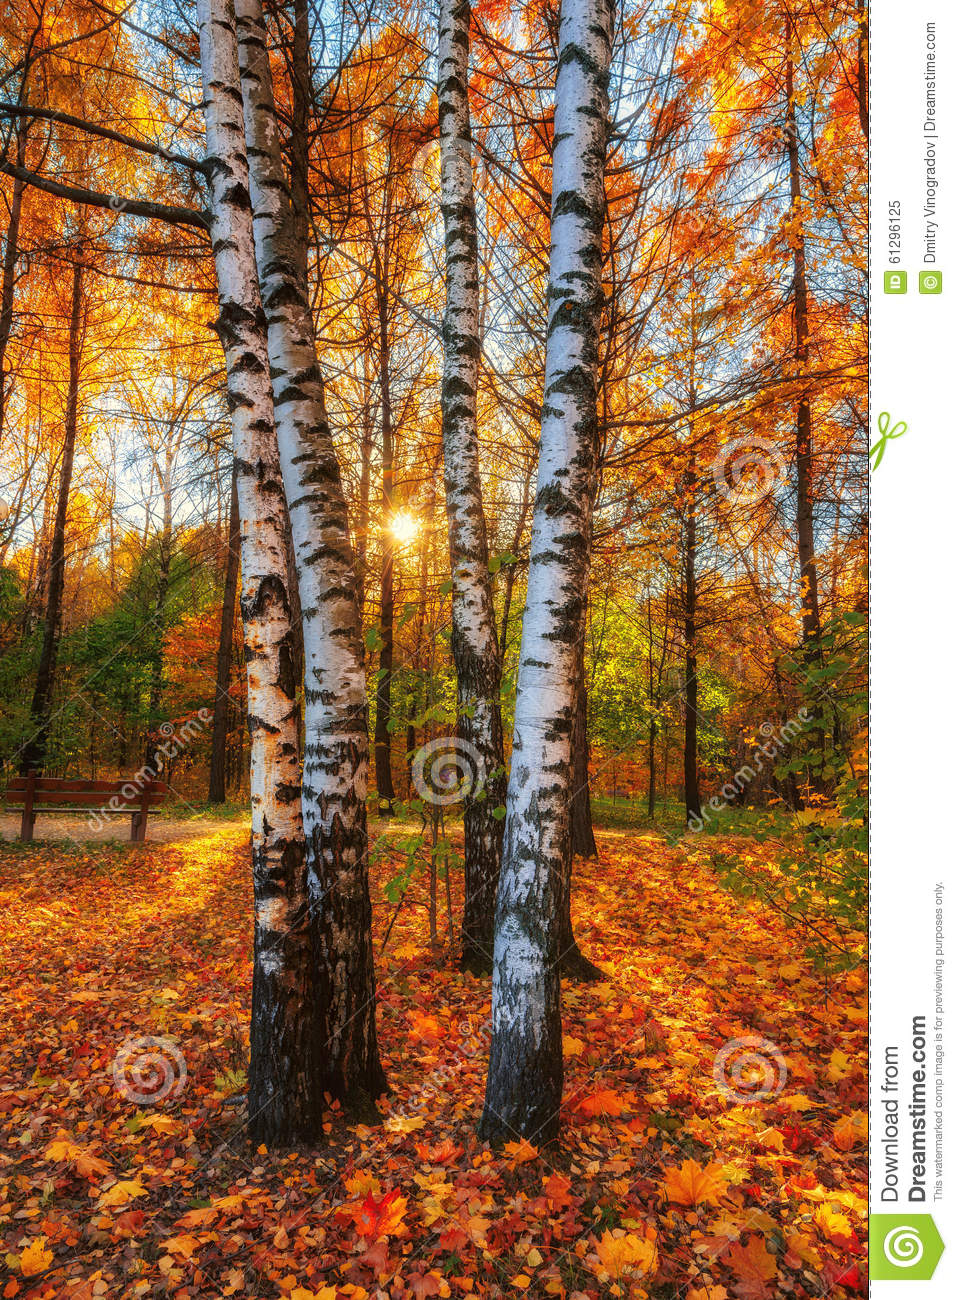 Fall Autumn Wallpaper Free Beautiful Autumn Morning In The Park With Soft Golden